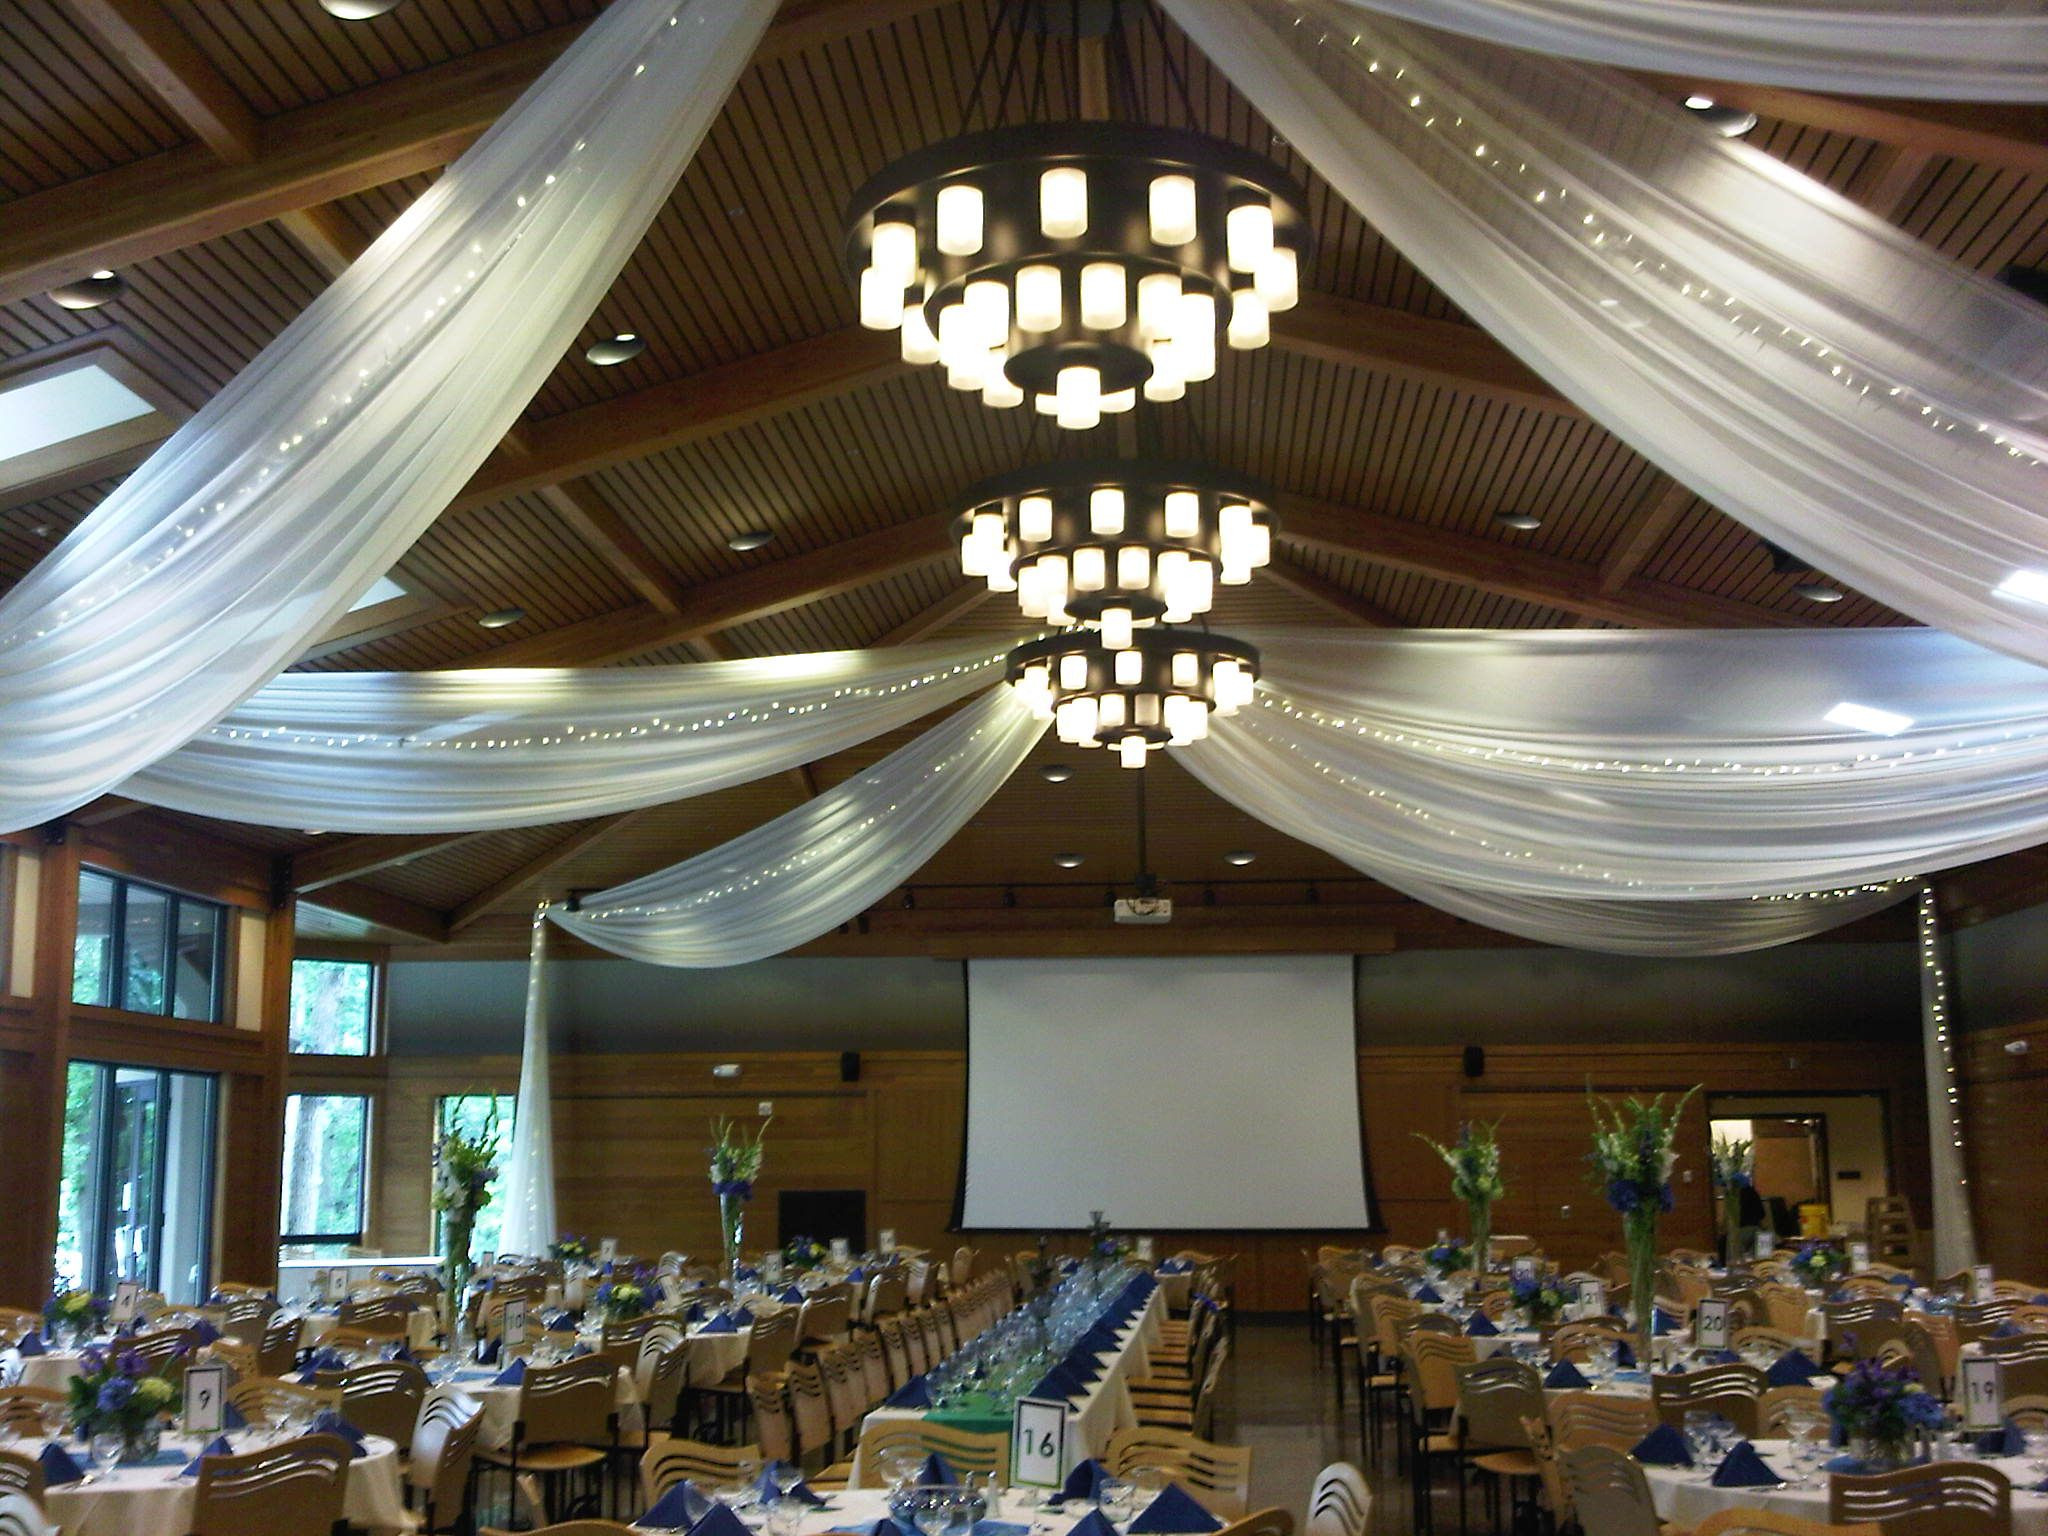 ceiling co events for lights with hang drapes how smsender to tulum